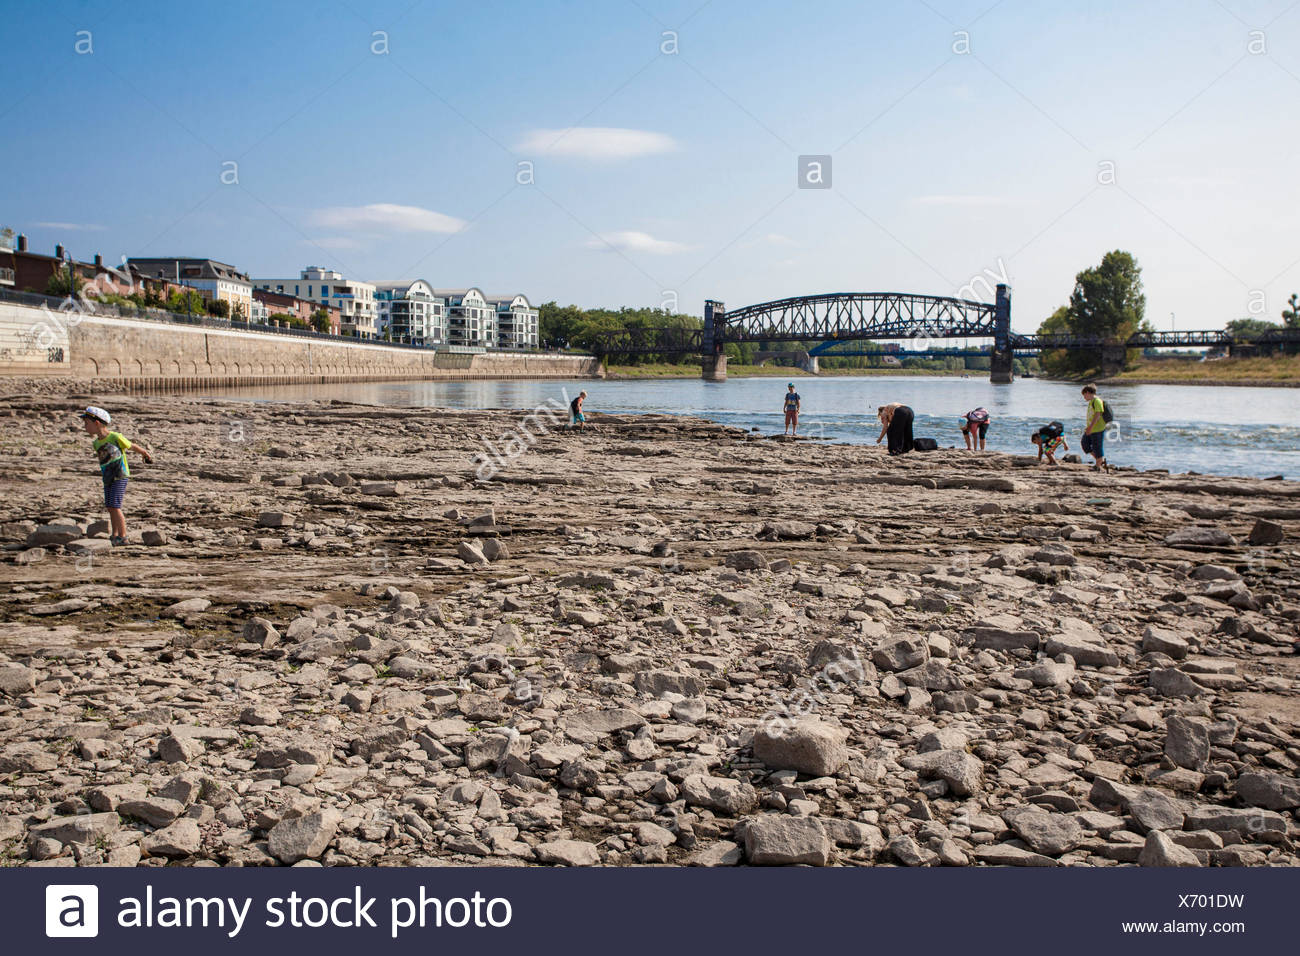 People on the Domfelsen in Magdeburg, low tide (55 cm), - Stock Image